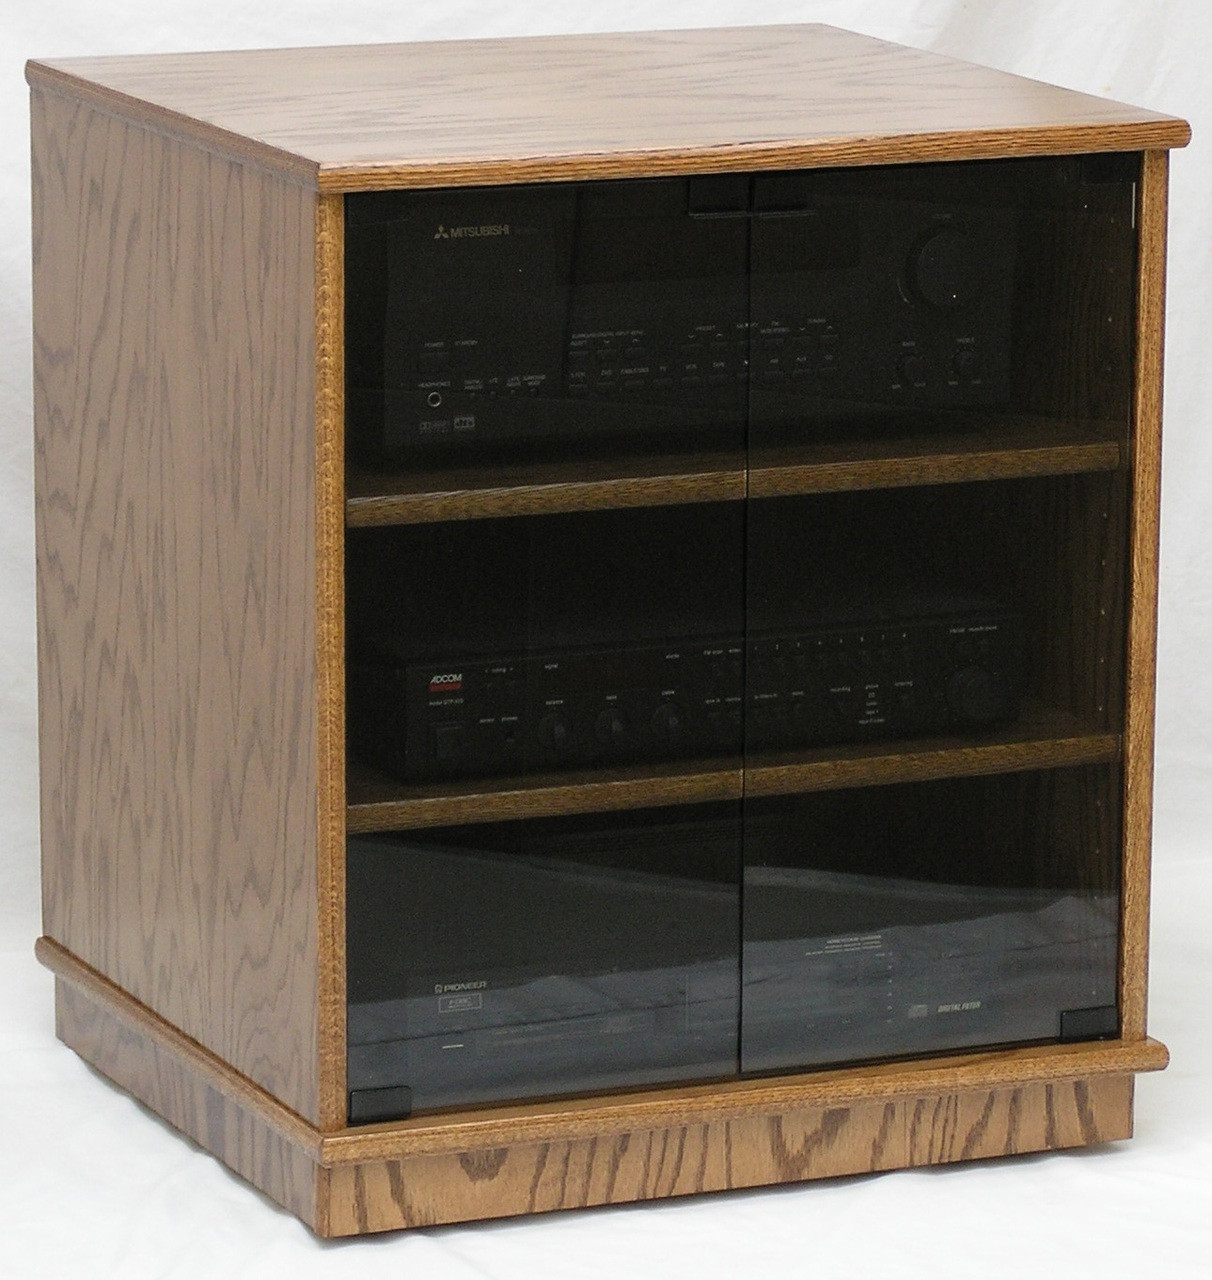 Stereo rack 27\  high with glass doors. Shown in Minwax Special Walnut stain color & Stereo Rack w Glass Doors 27\